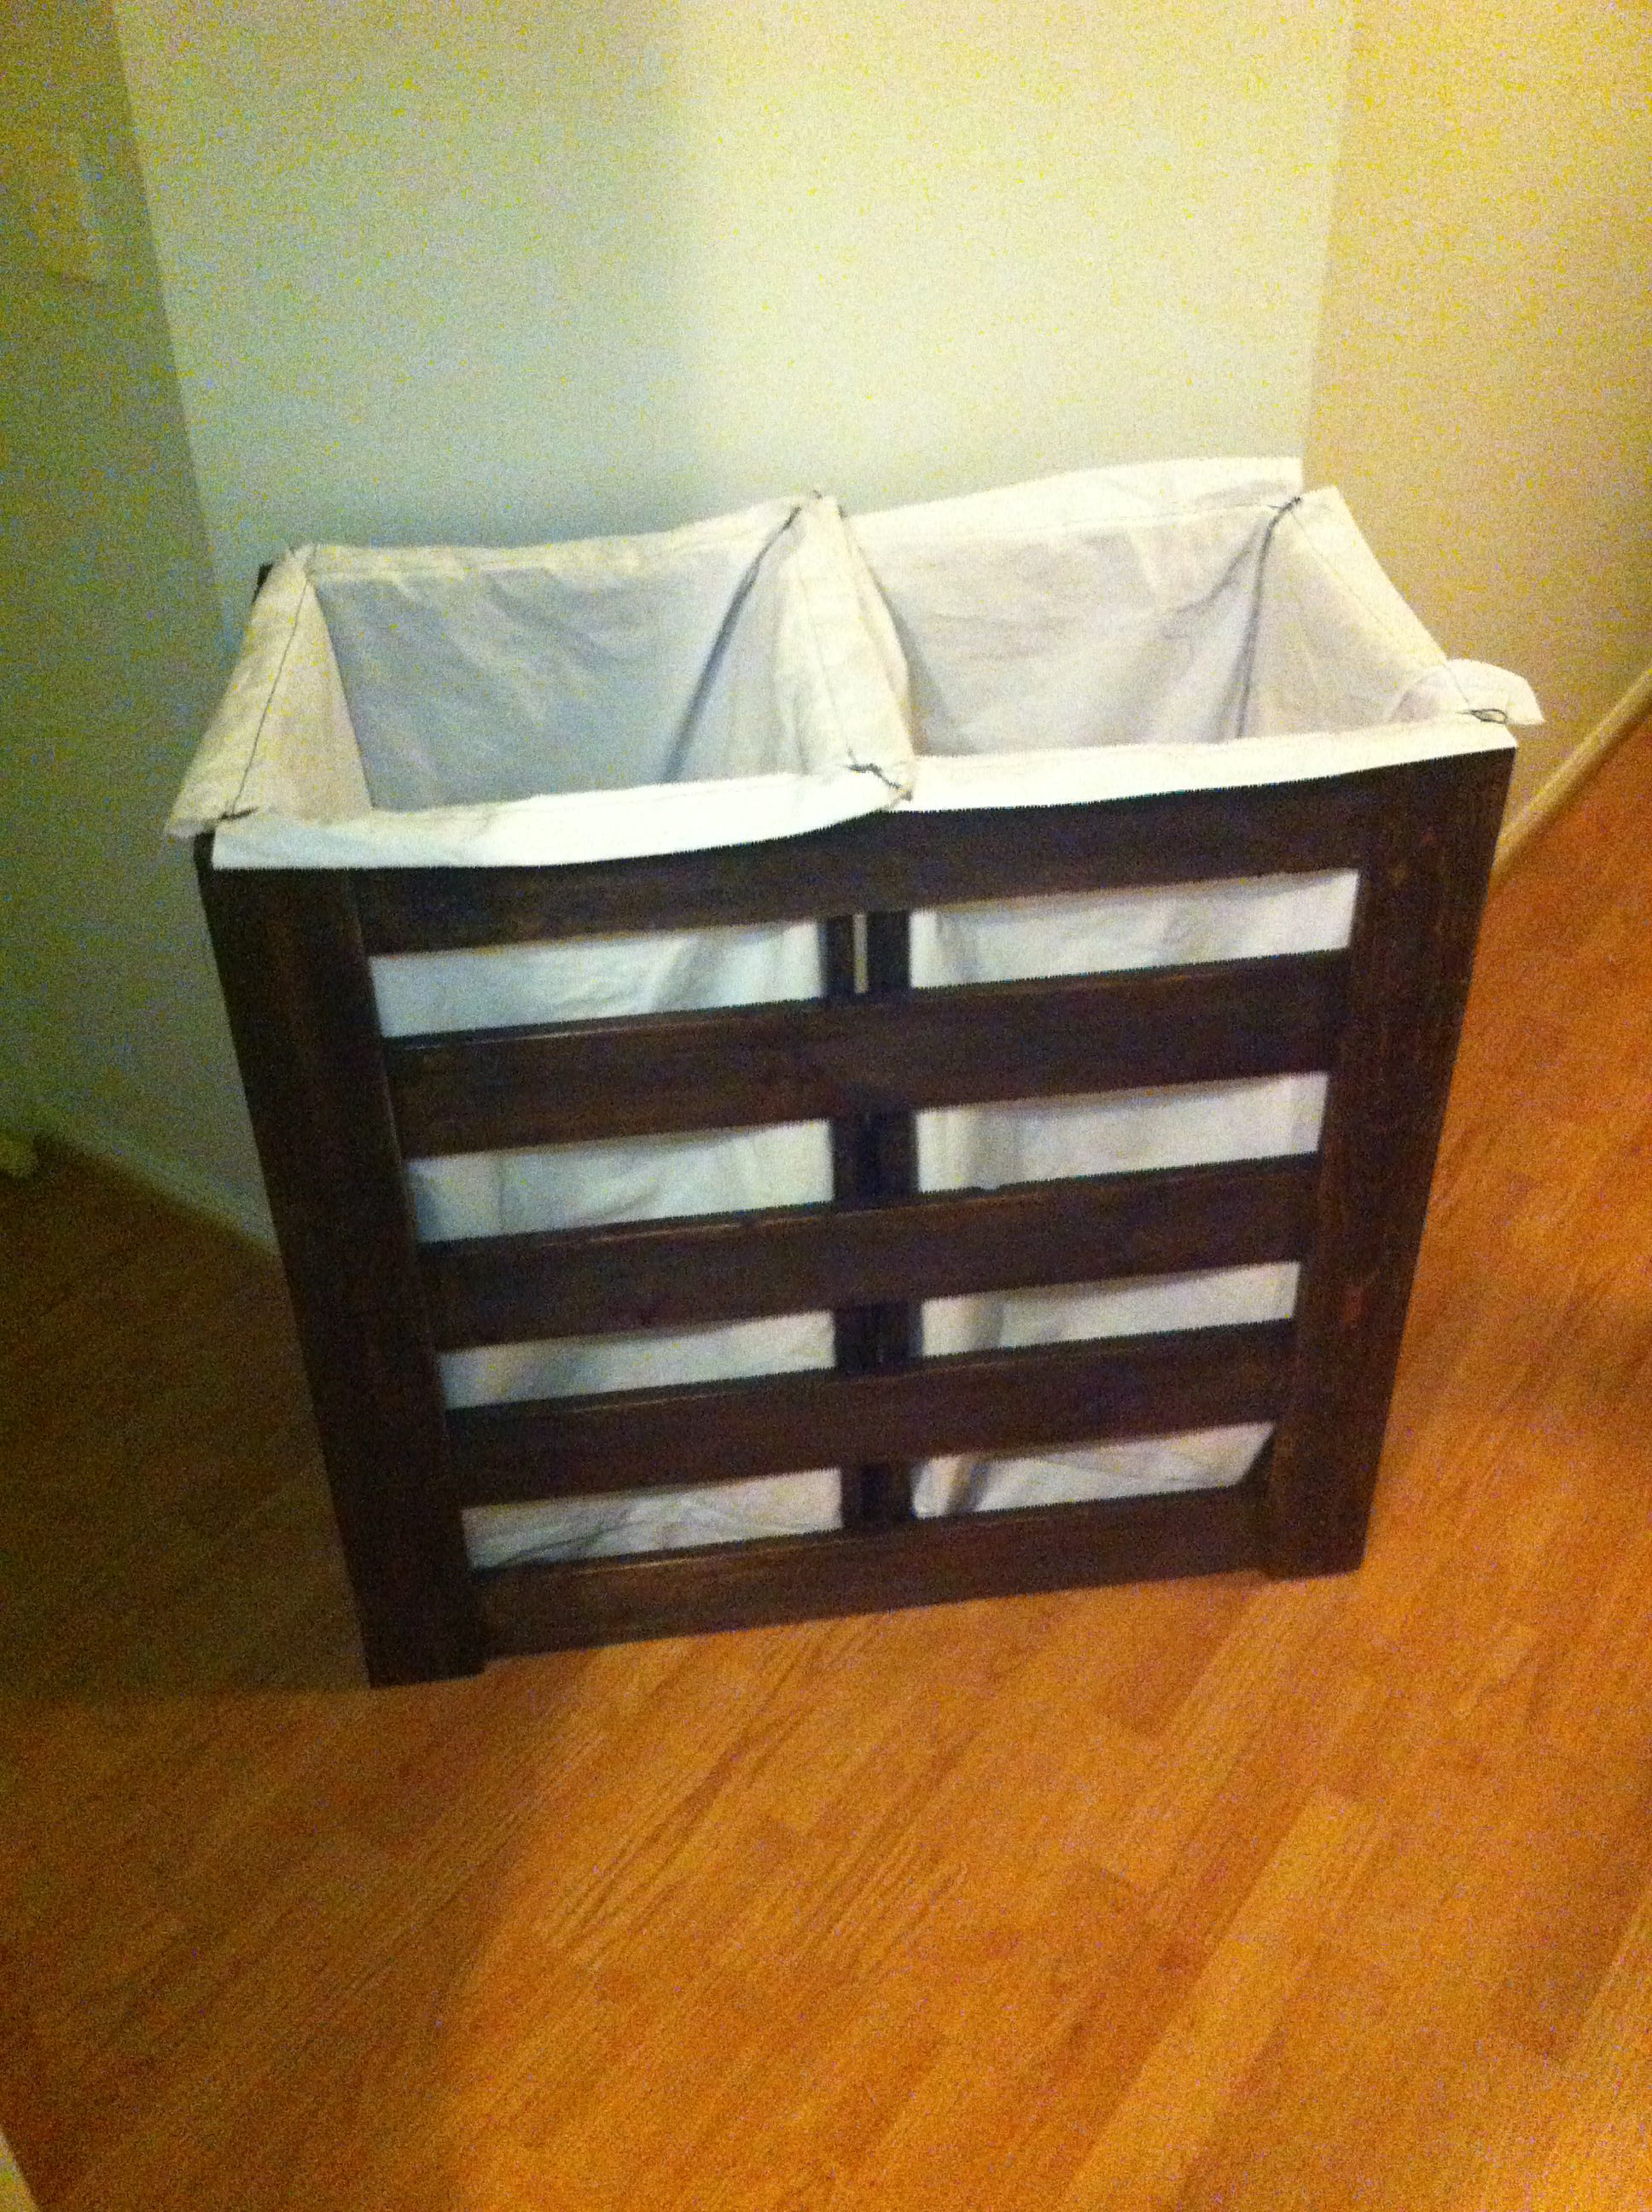 Double Pallet Laundry Hamper To See Other Stuff We Have Made Check Us Out On Facebook At Wood N Stuff Ad Laundry Hamper Laundry Hamper Diy Diy Laundry Basket